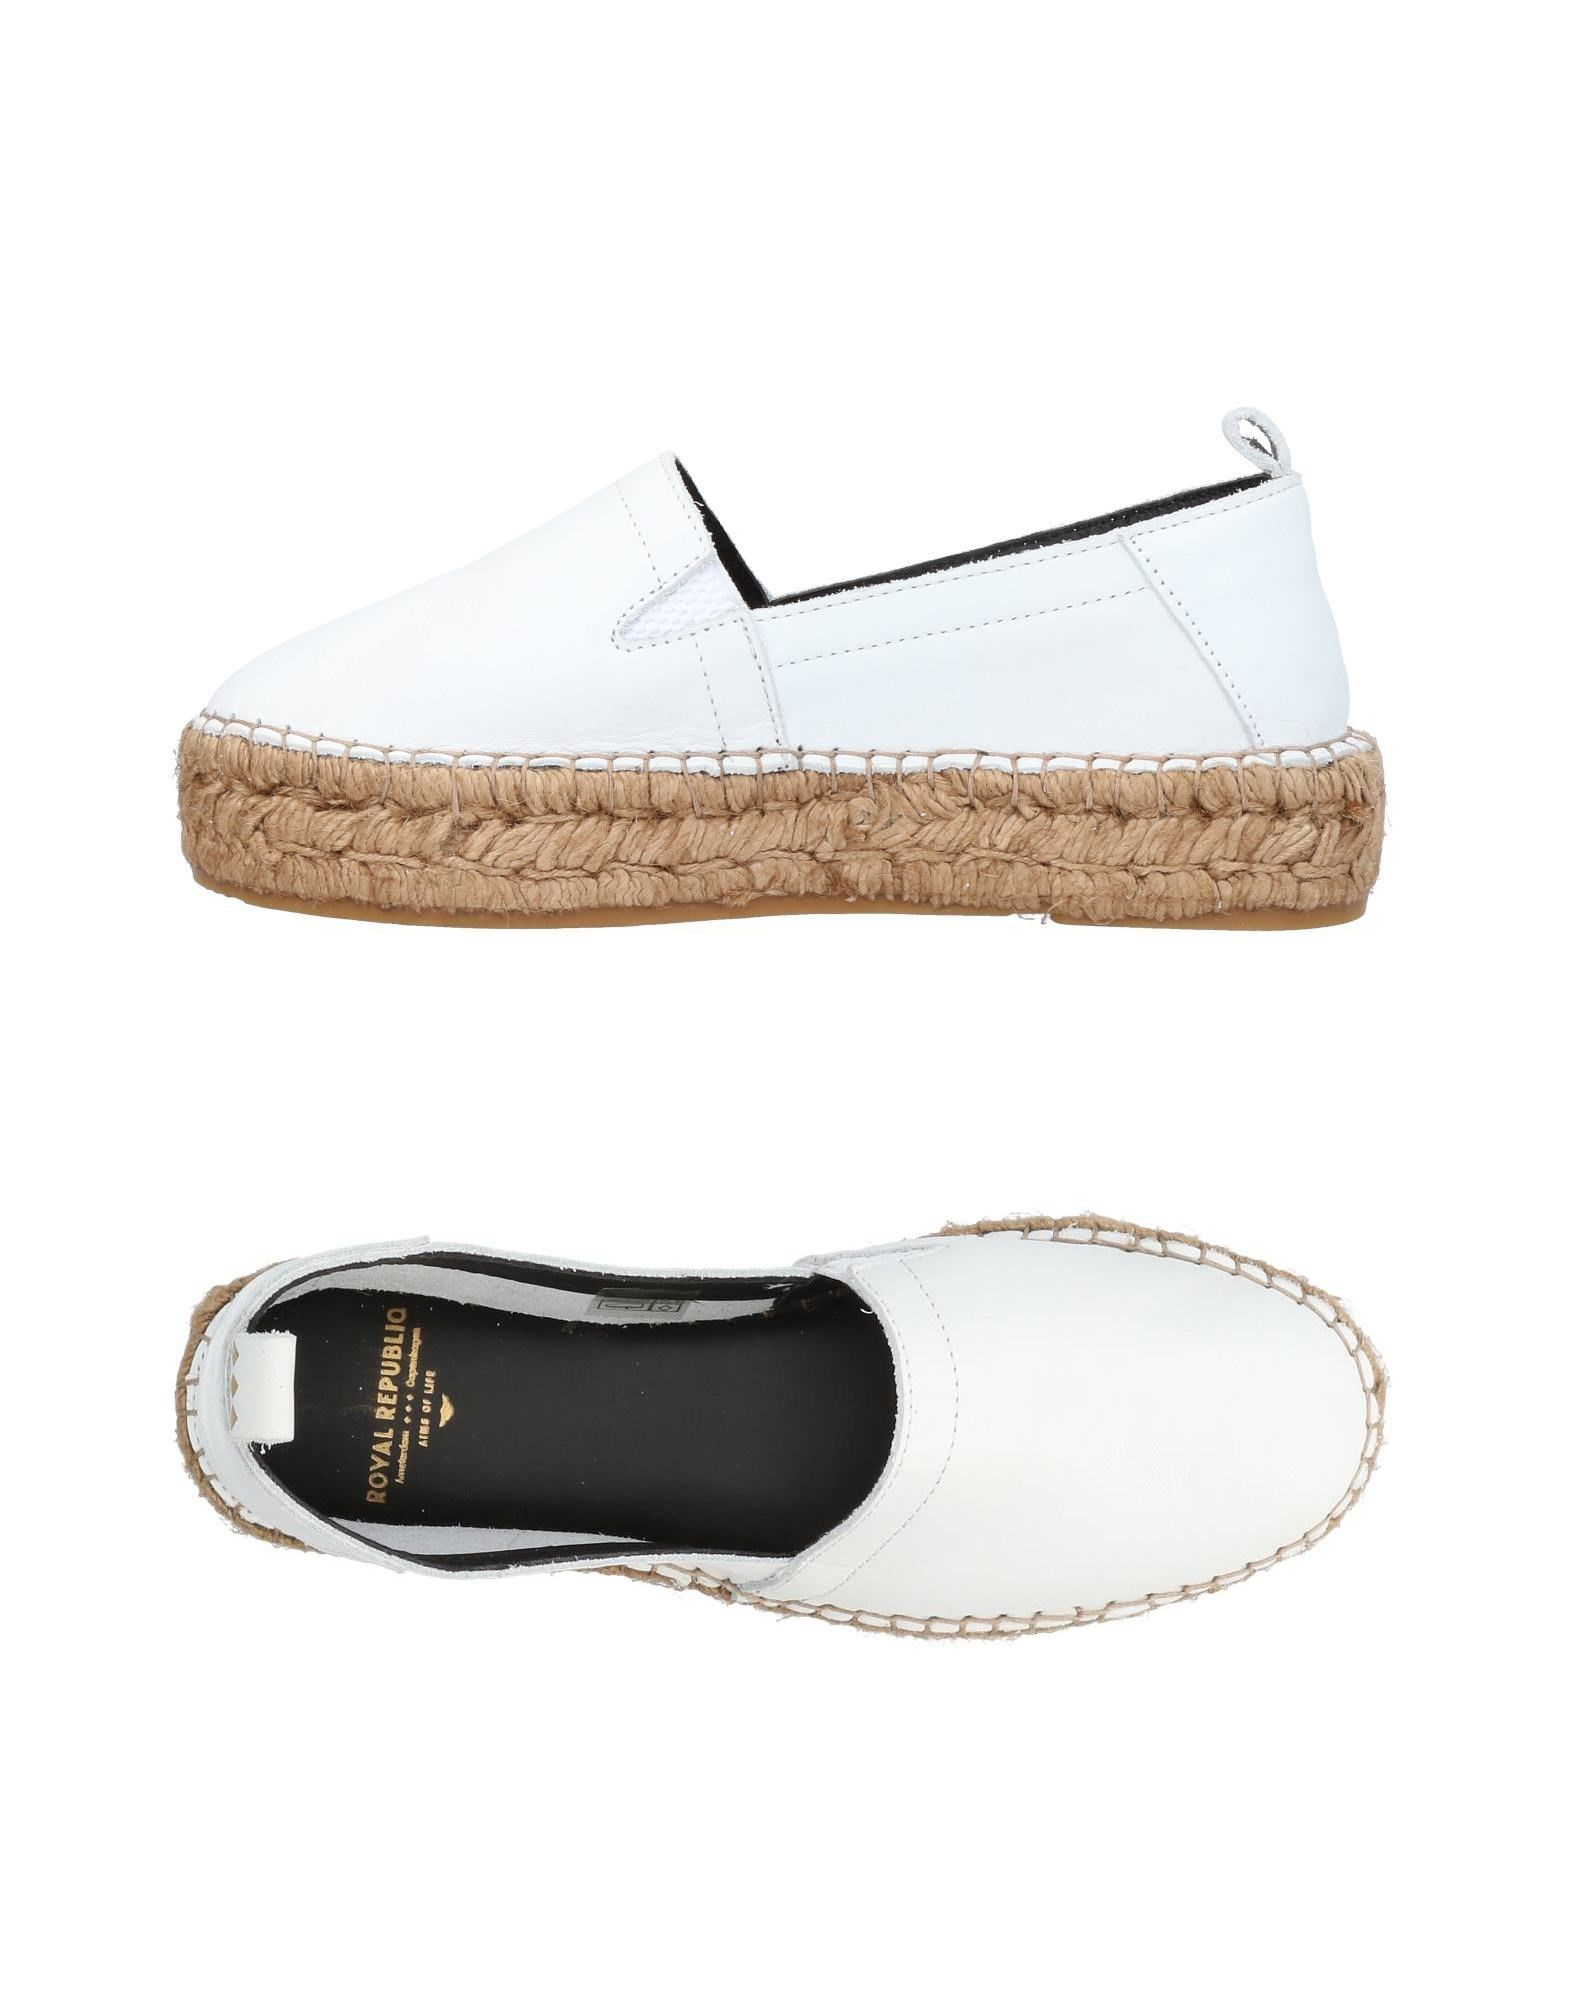 ROYAL REPUBLIQ Espadrilles in White